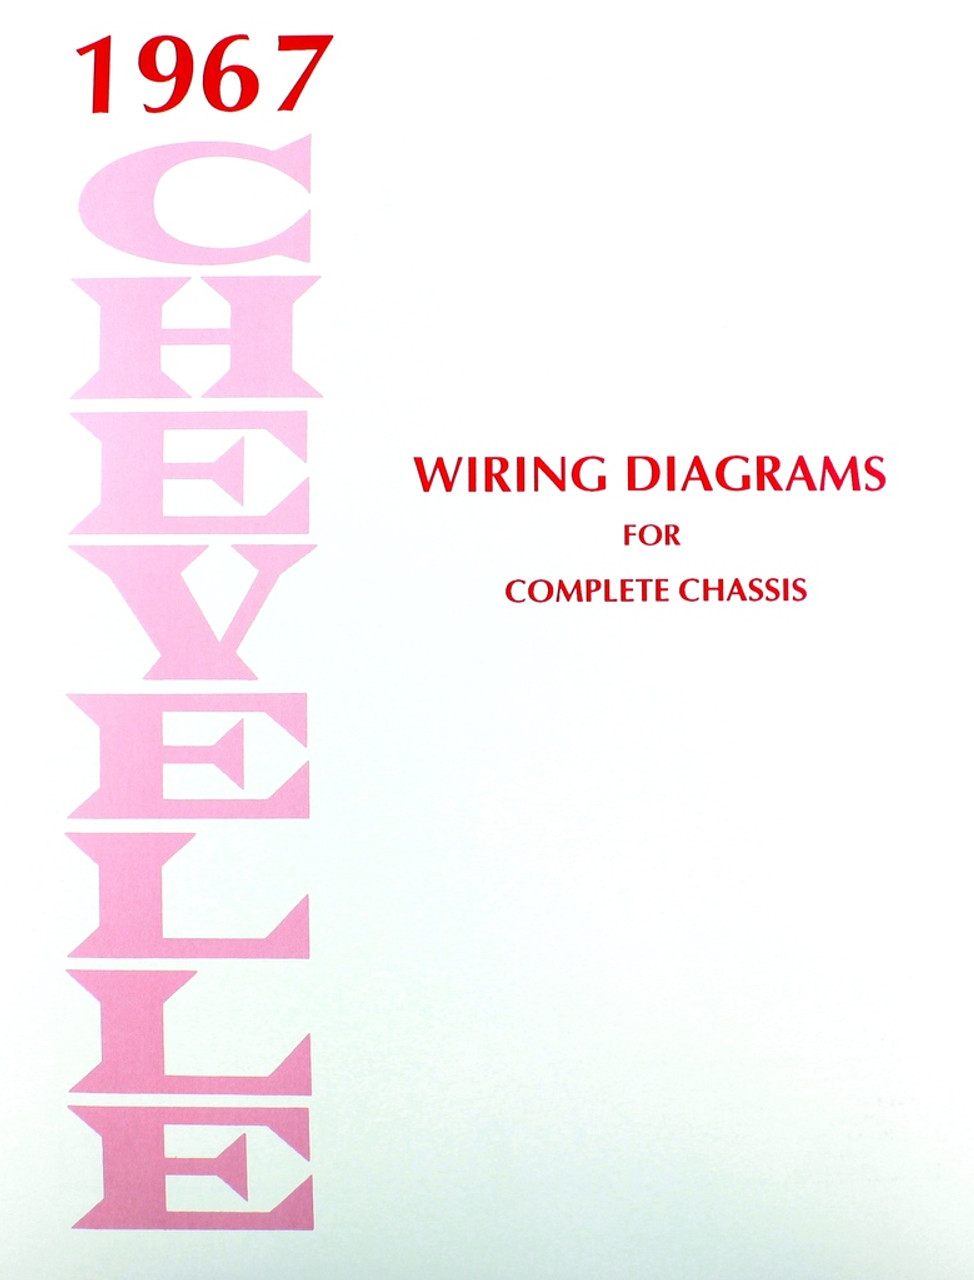 67 1967 Chevelle El Camino Electrical Wiring Diagram Manual I 5 - Repair Wiring Scheme